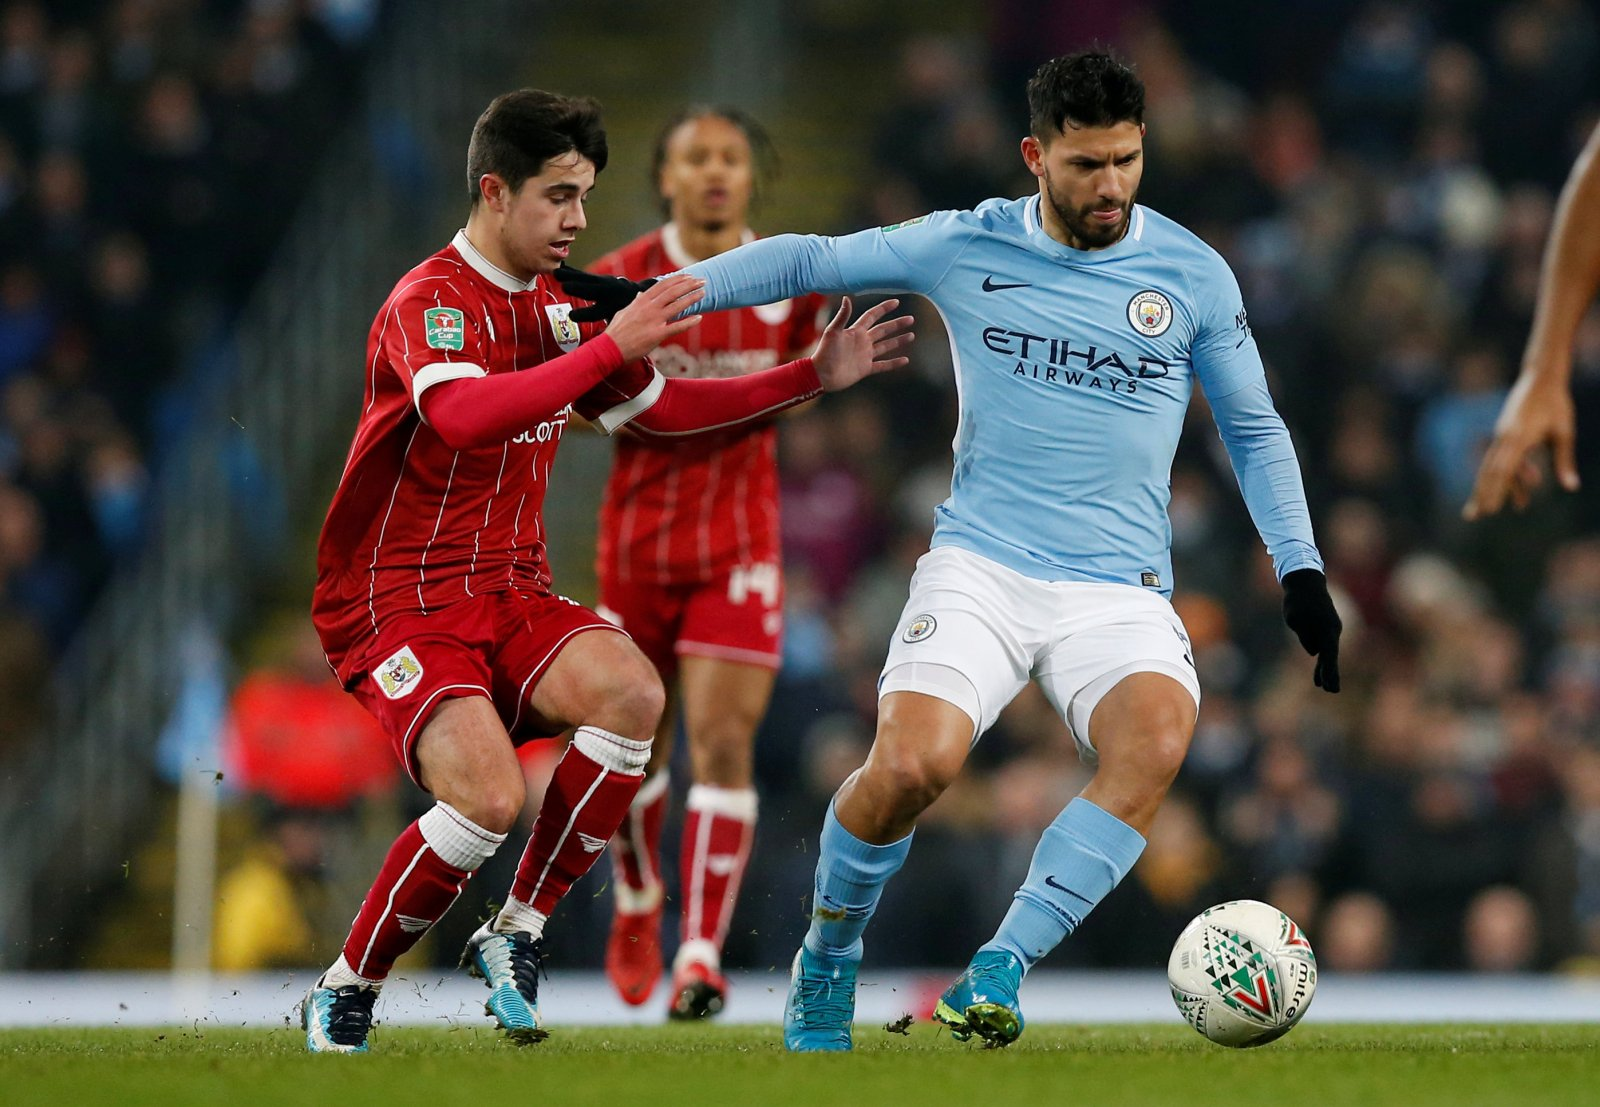 Liam Walsh (left) tracking Manchester City striker Sergio Agüero (right) when Bristol City visited the Etihad in January 2018